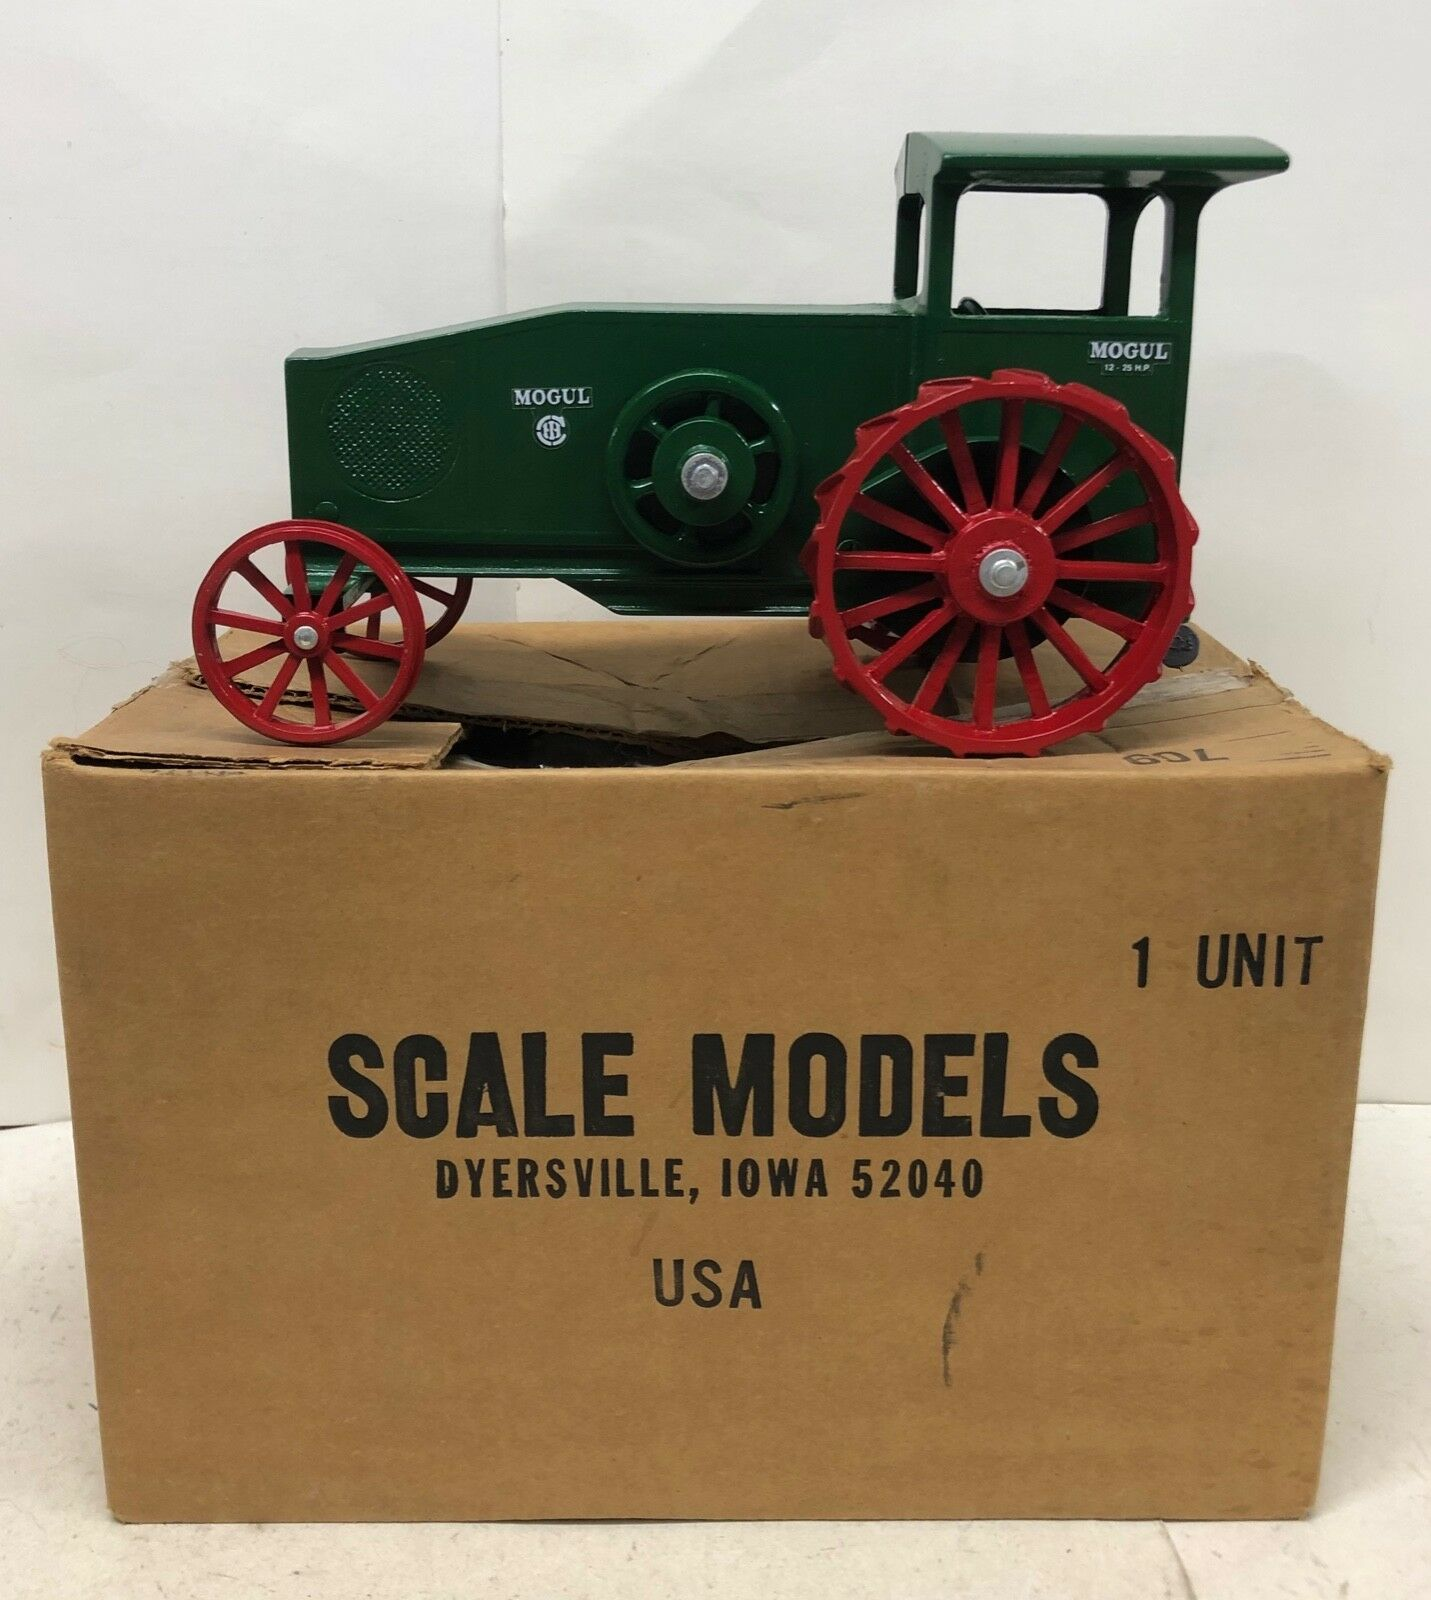 1 16 IH International Harvester 12-25 H.P. Mogul Tractor on Steel Scale Models